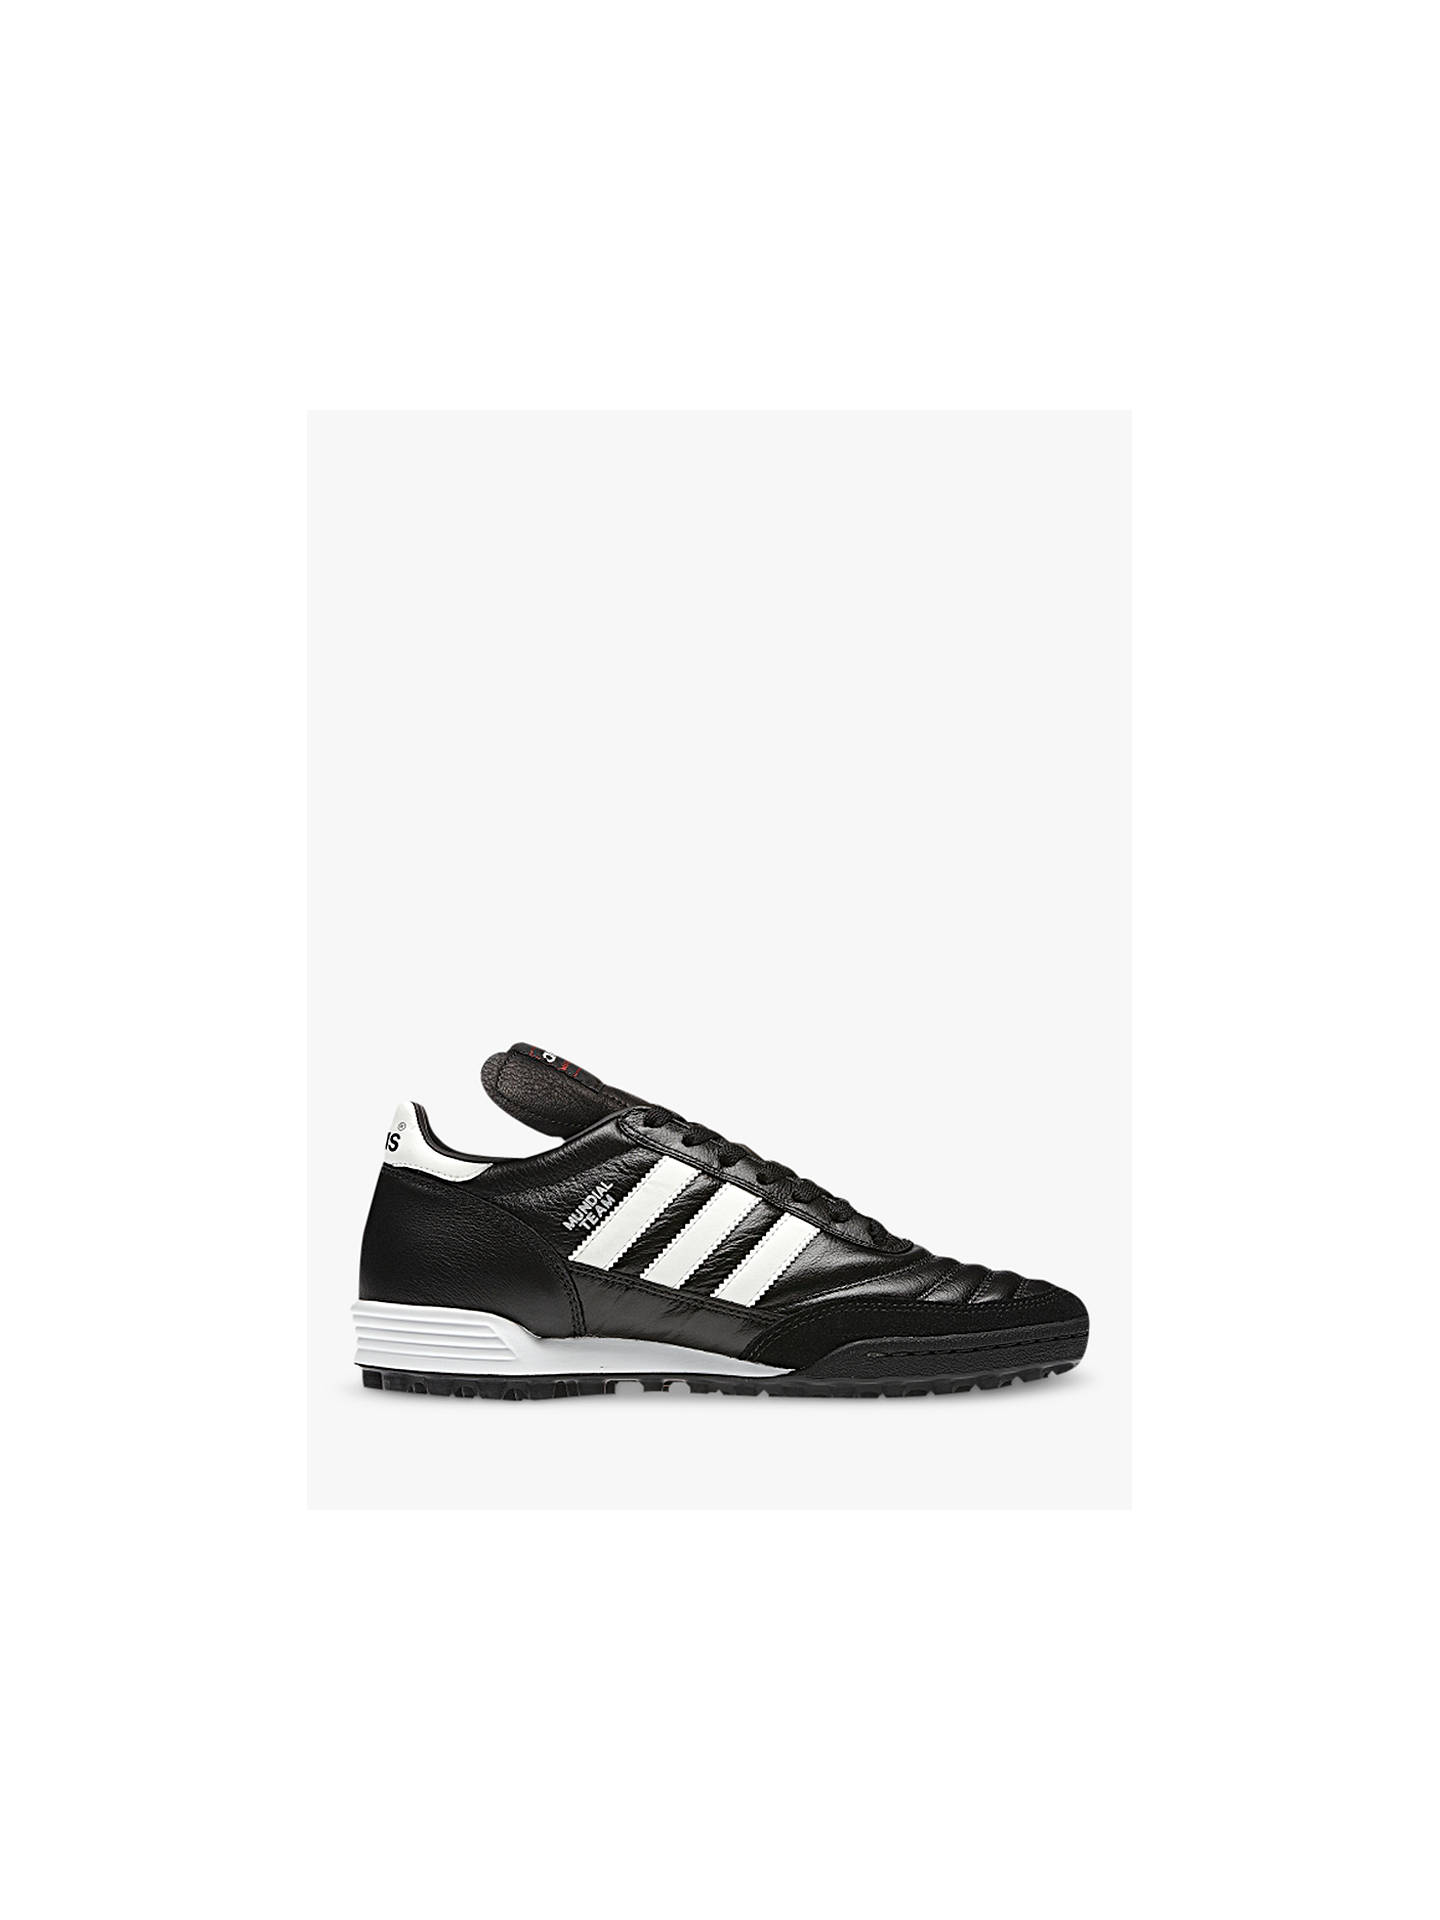 Buy adidas Mundial Team Men's Football Boots, Black/White, 7 Online at johnlewis.com